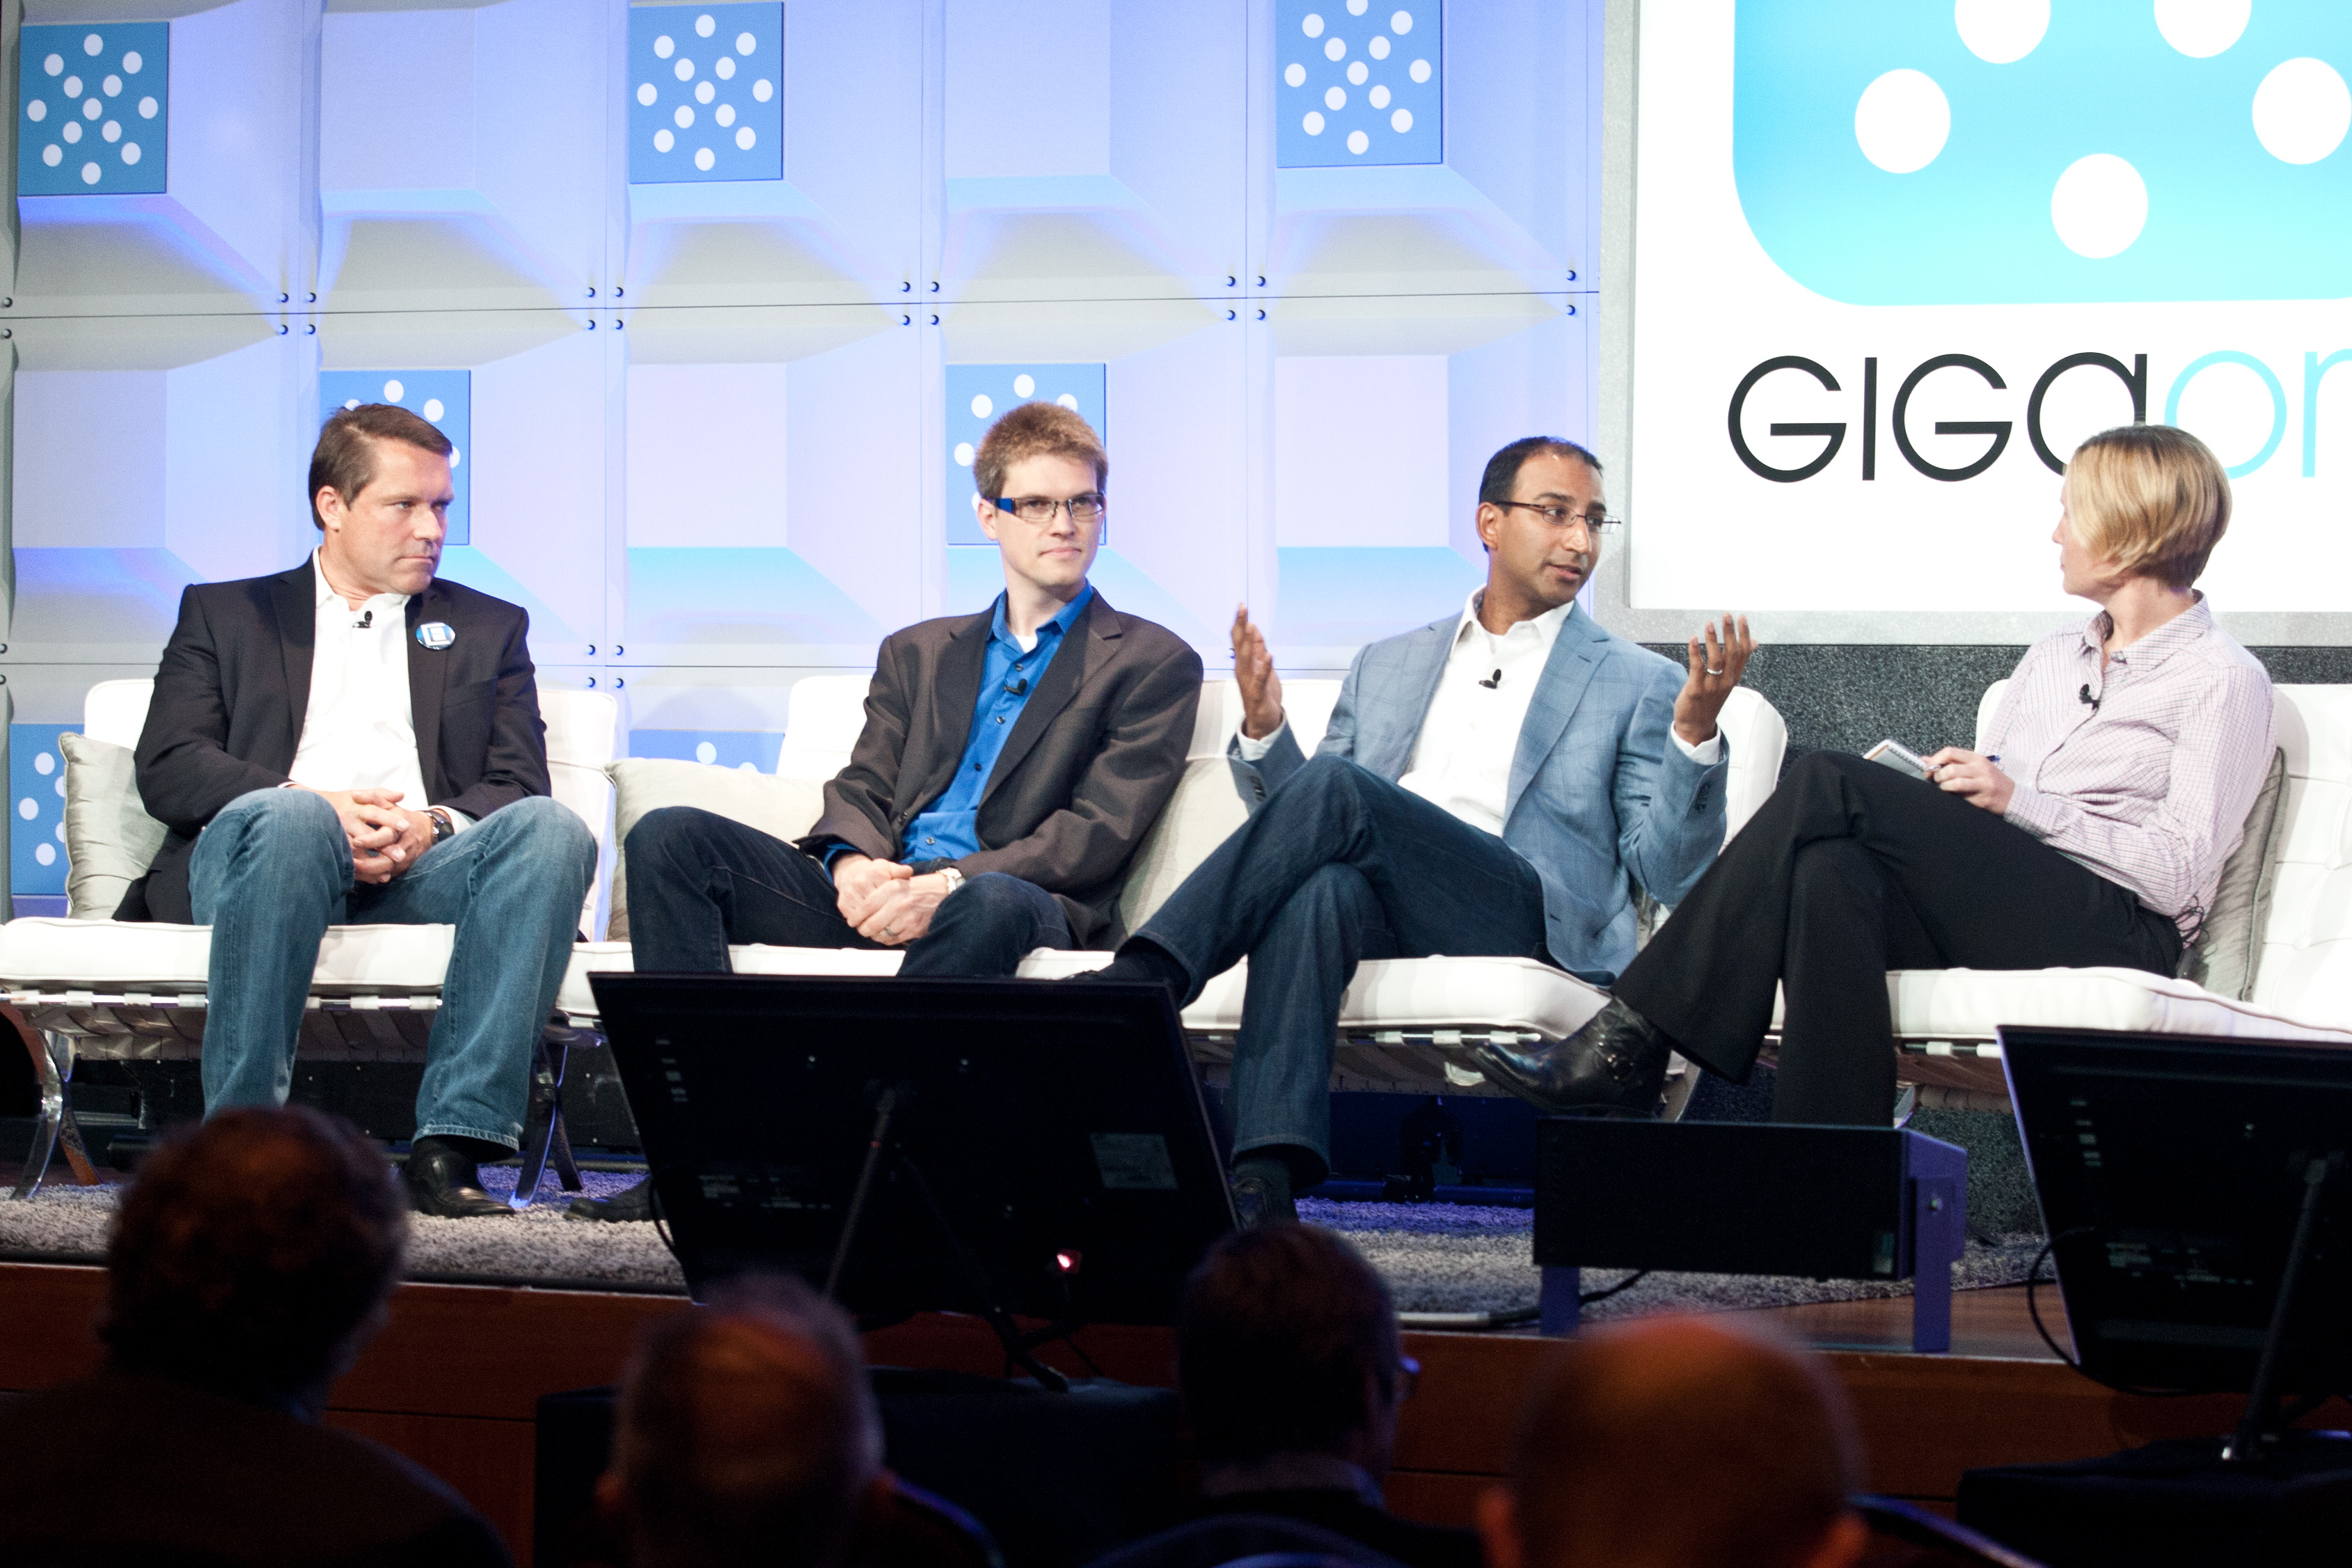 Structure 2012: Marten Mickos - CEO, Eucalyptus Systems, Chris C. Kemp - CEO, Nebula and Co-Founder, OpenStack, Sameer Dholakia - Group VP and GM, Cloud Platforms Group, Citrix, Jo Maitland - Research Director, GigaOM Pro